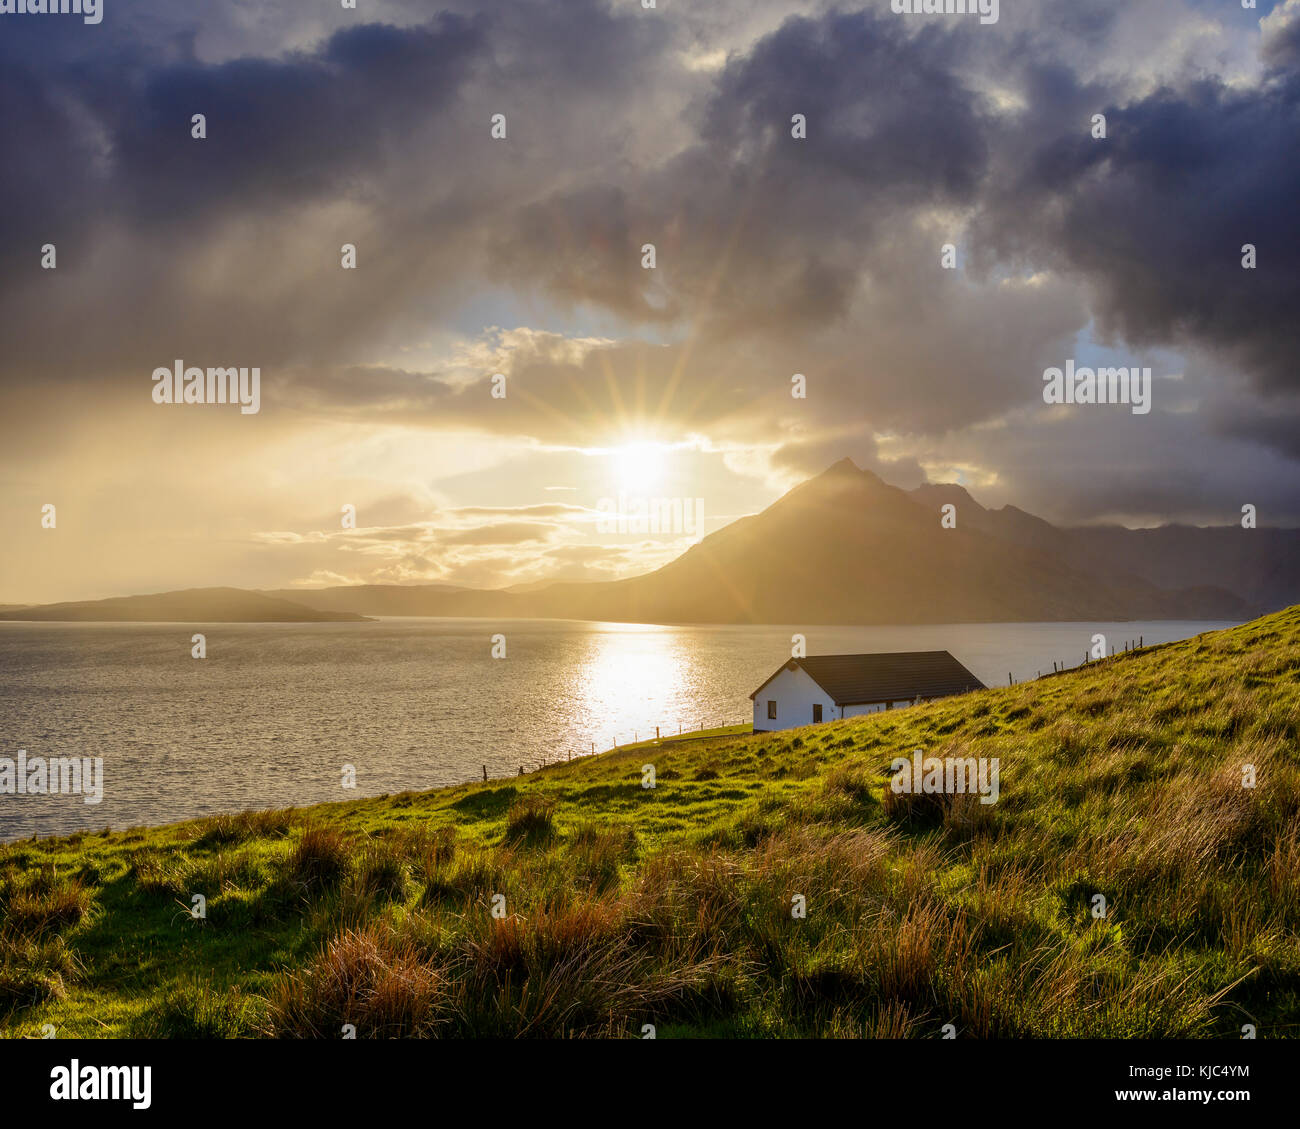 Rooftop of a house along the Scottish coast with sun shining through the clouds over Loch Scavaig, Isle of Skye - Stock Image